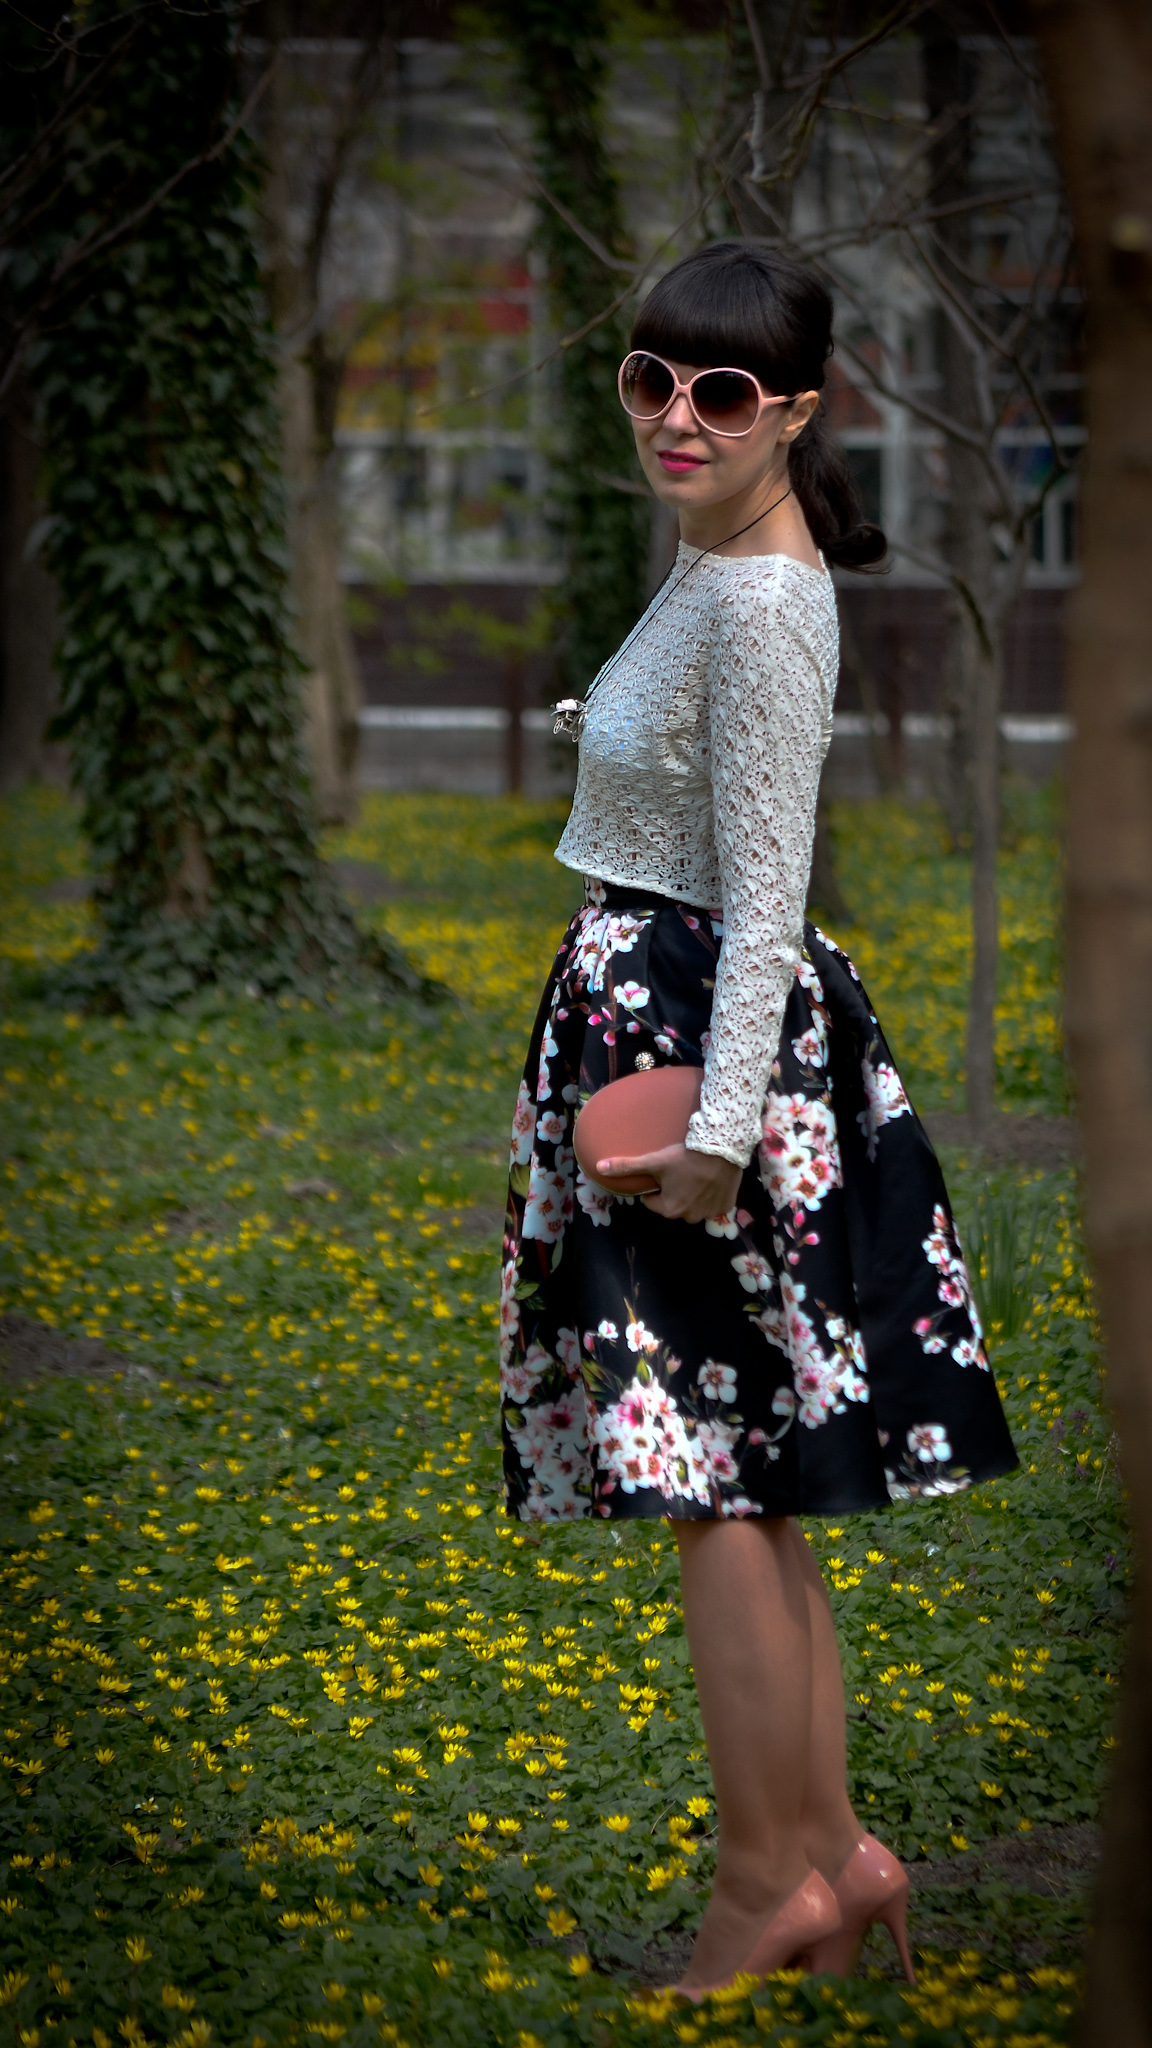 blooming skirt sheinside cherry flowers 50s style coral clutch heels leather jacket pink sunglasses spring lace crop top zara